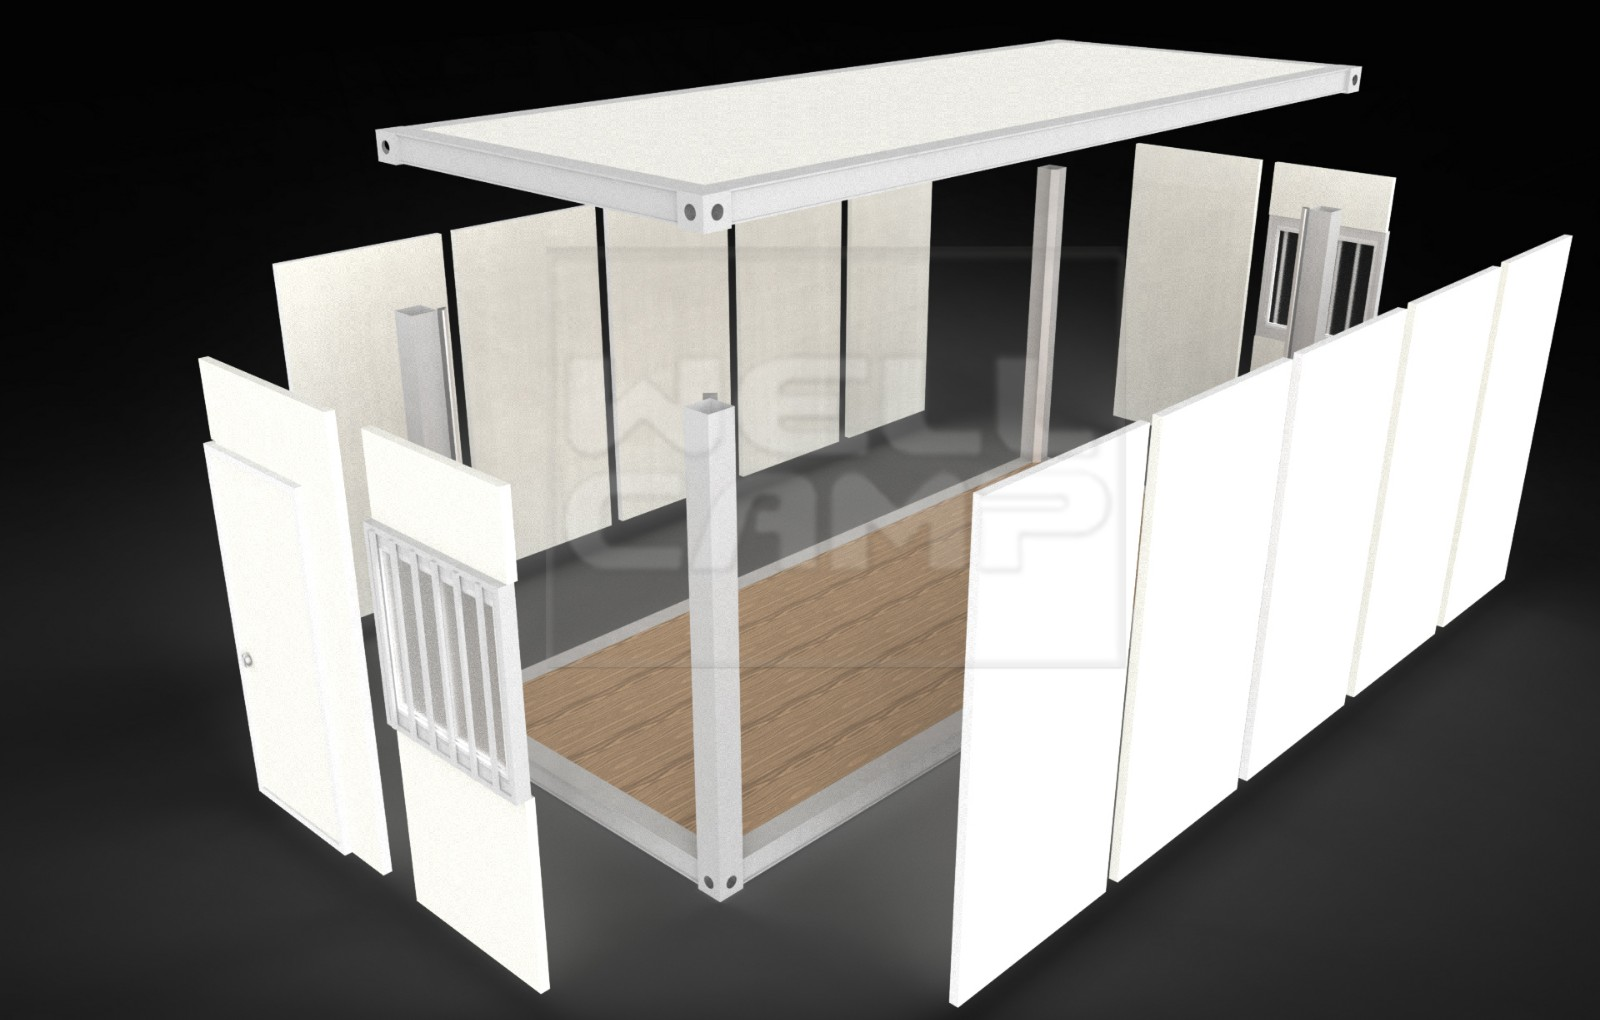 WELLCAMP, WELLCAMP prefab house, WELLCAMP container house-Find Container Villa 2 Story Modern Manuf-8